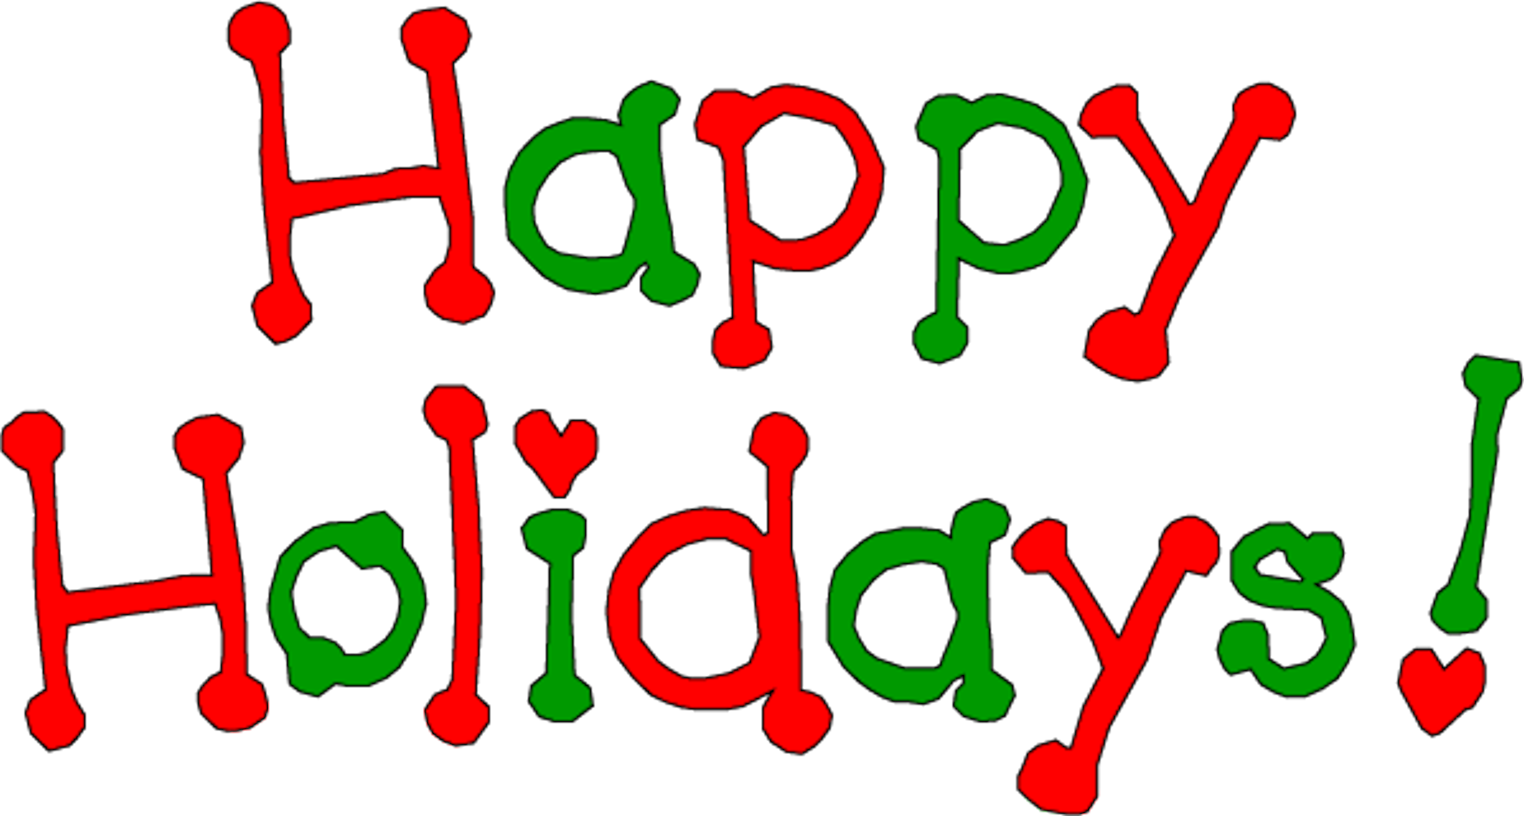 1524x823 Word December Clip Art Merry Christmas Amp Happy New Year Arts